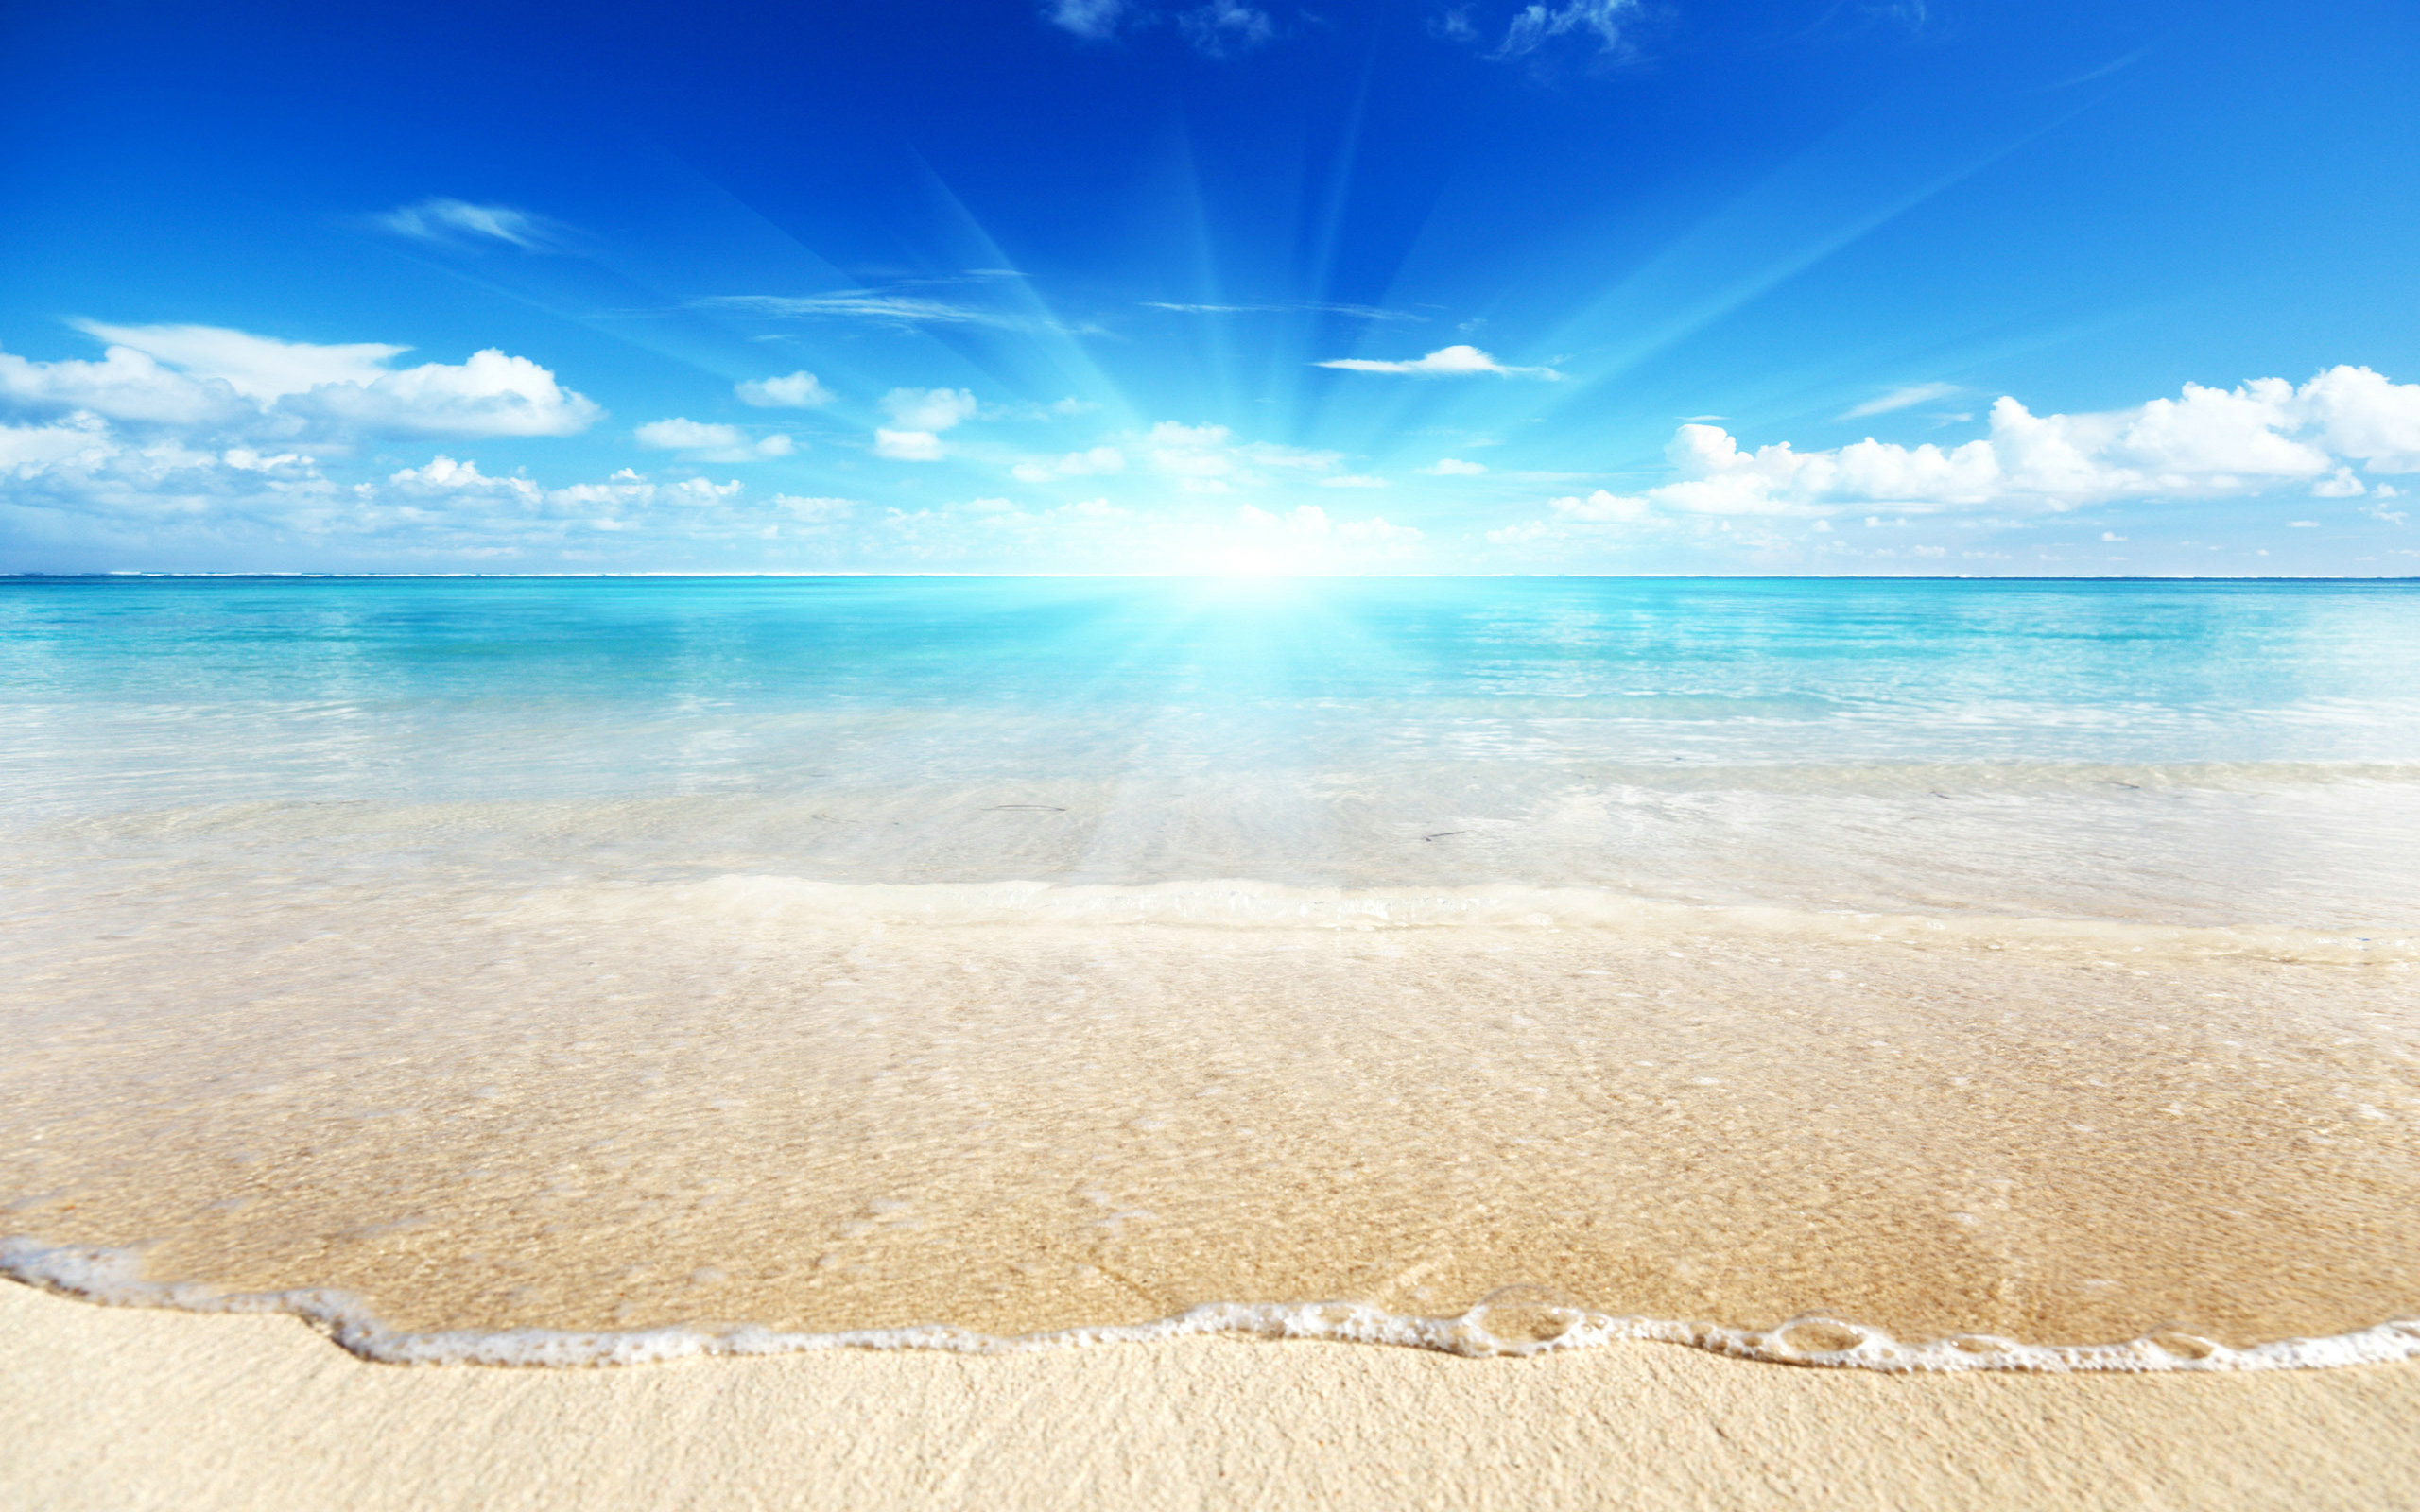 beautiful beach wallpaper 756232